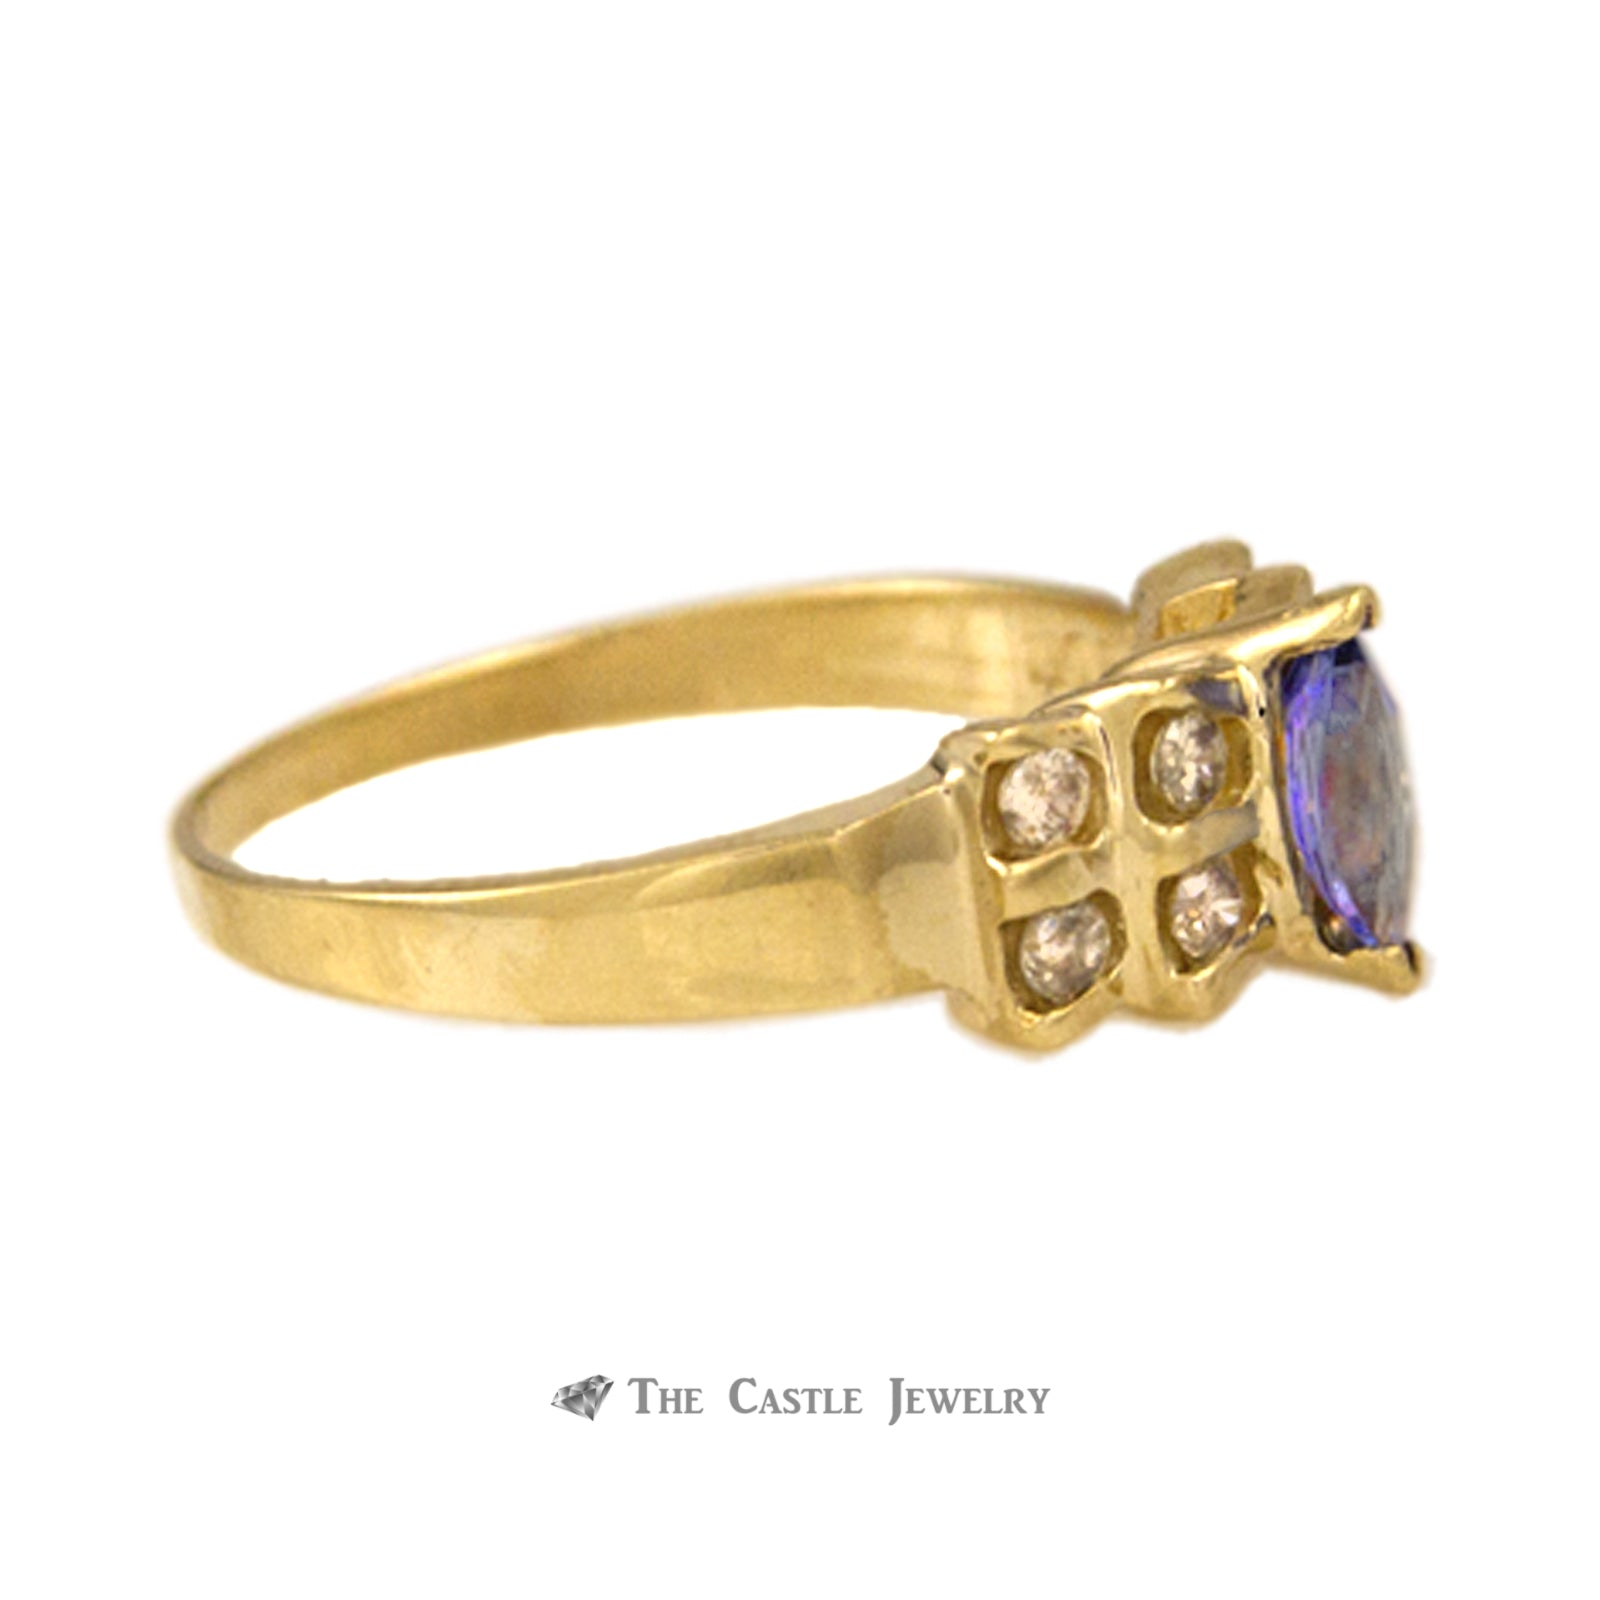 Marquise Tanzanite Ring in Bow Design Diamond Mounting 14K Gold